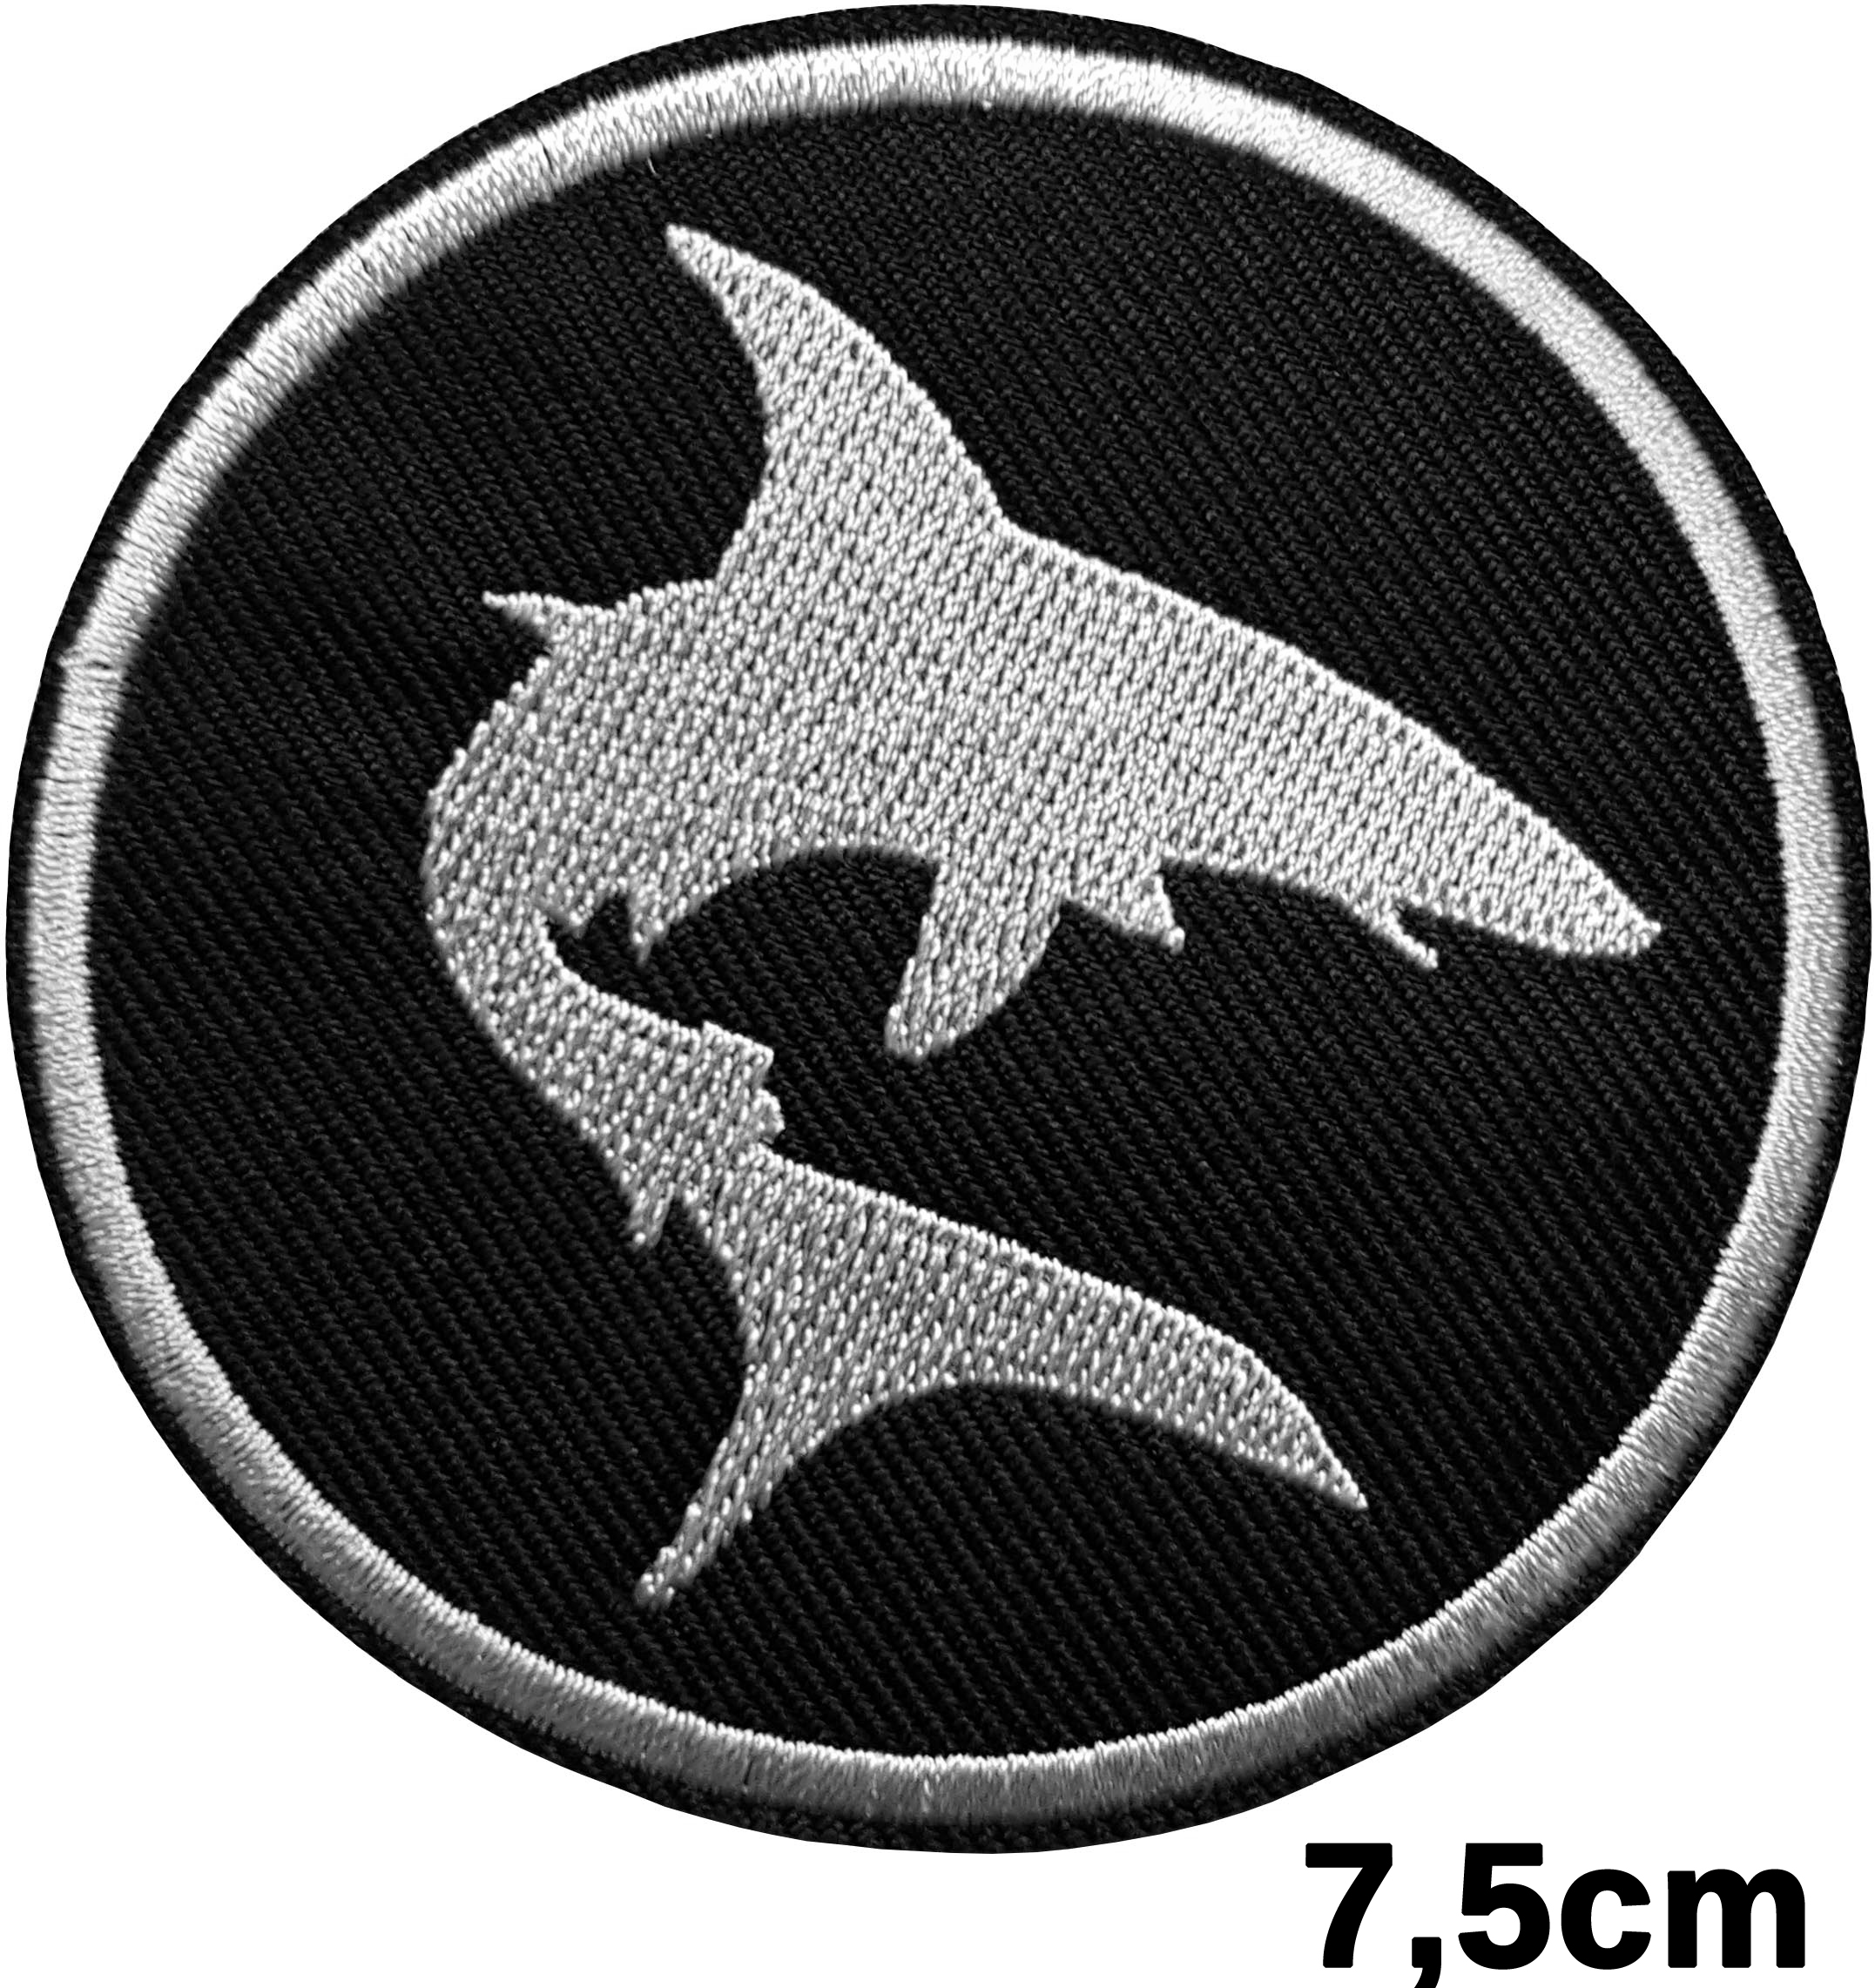 PAT199 - Patch thermocollant requin